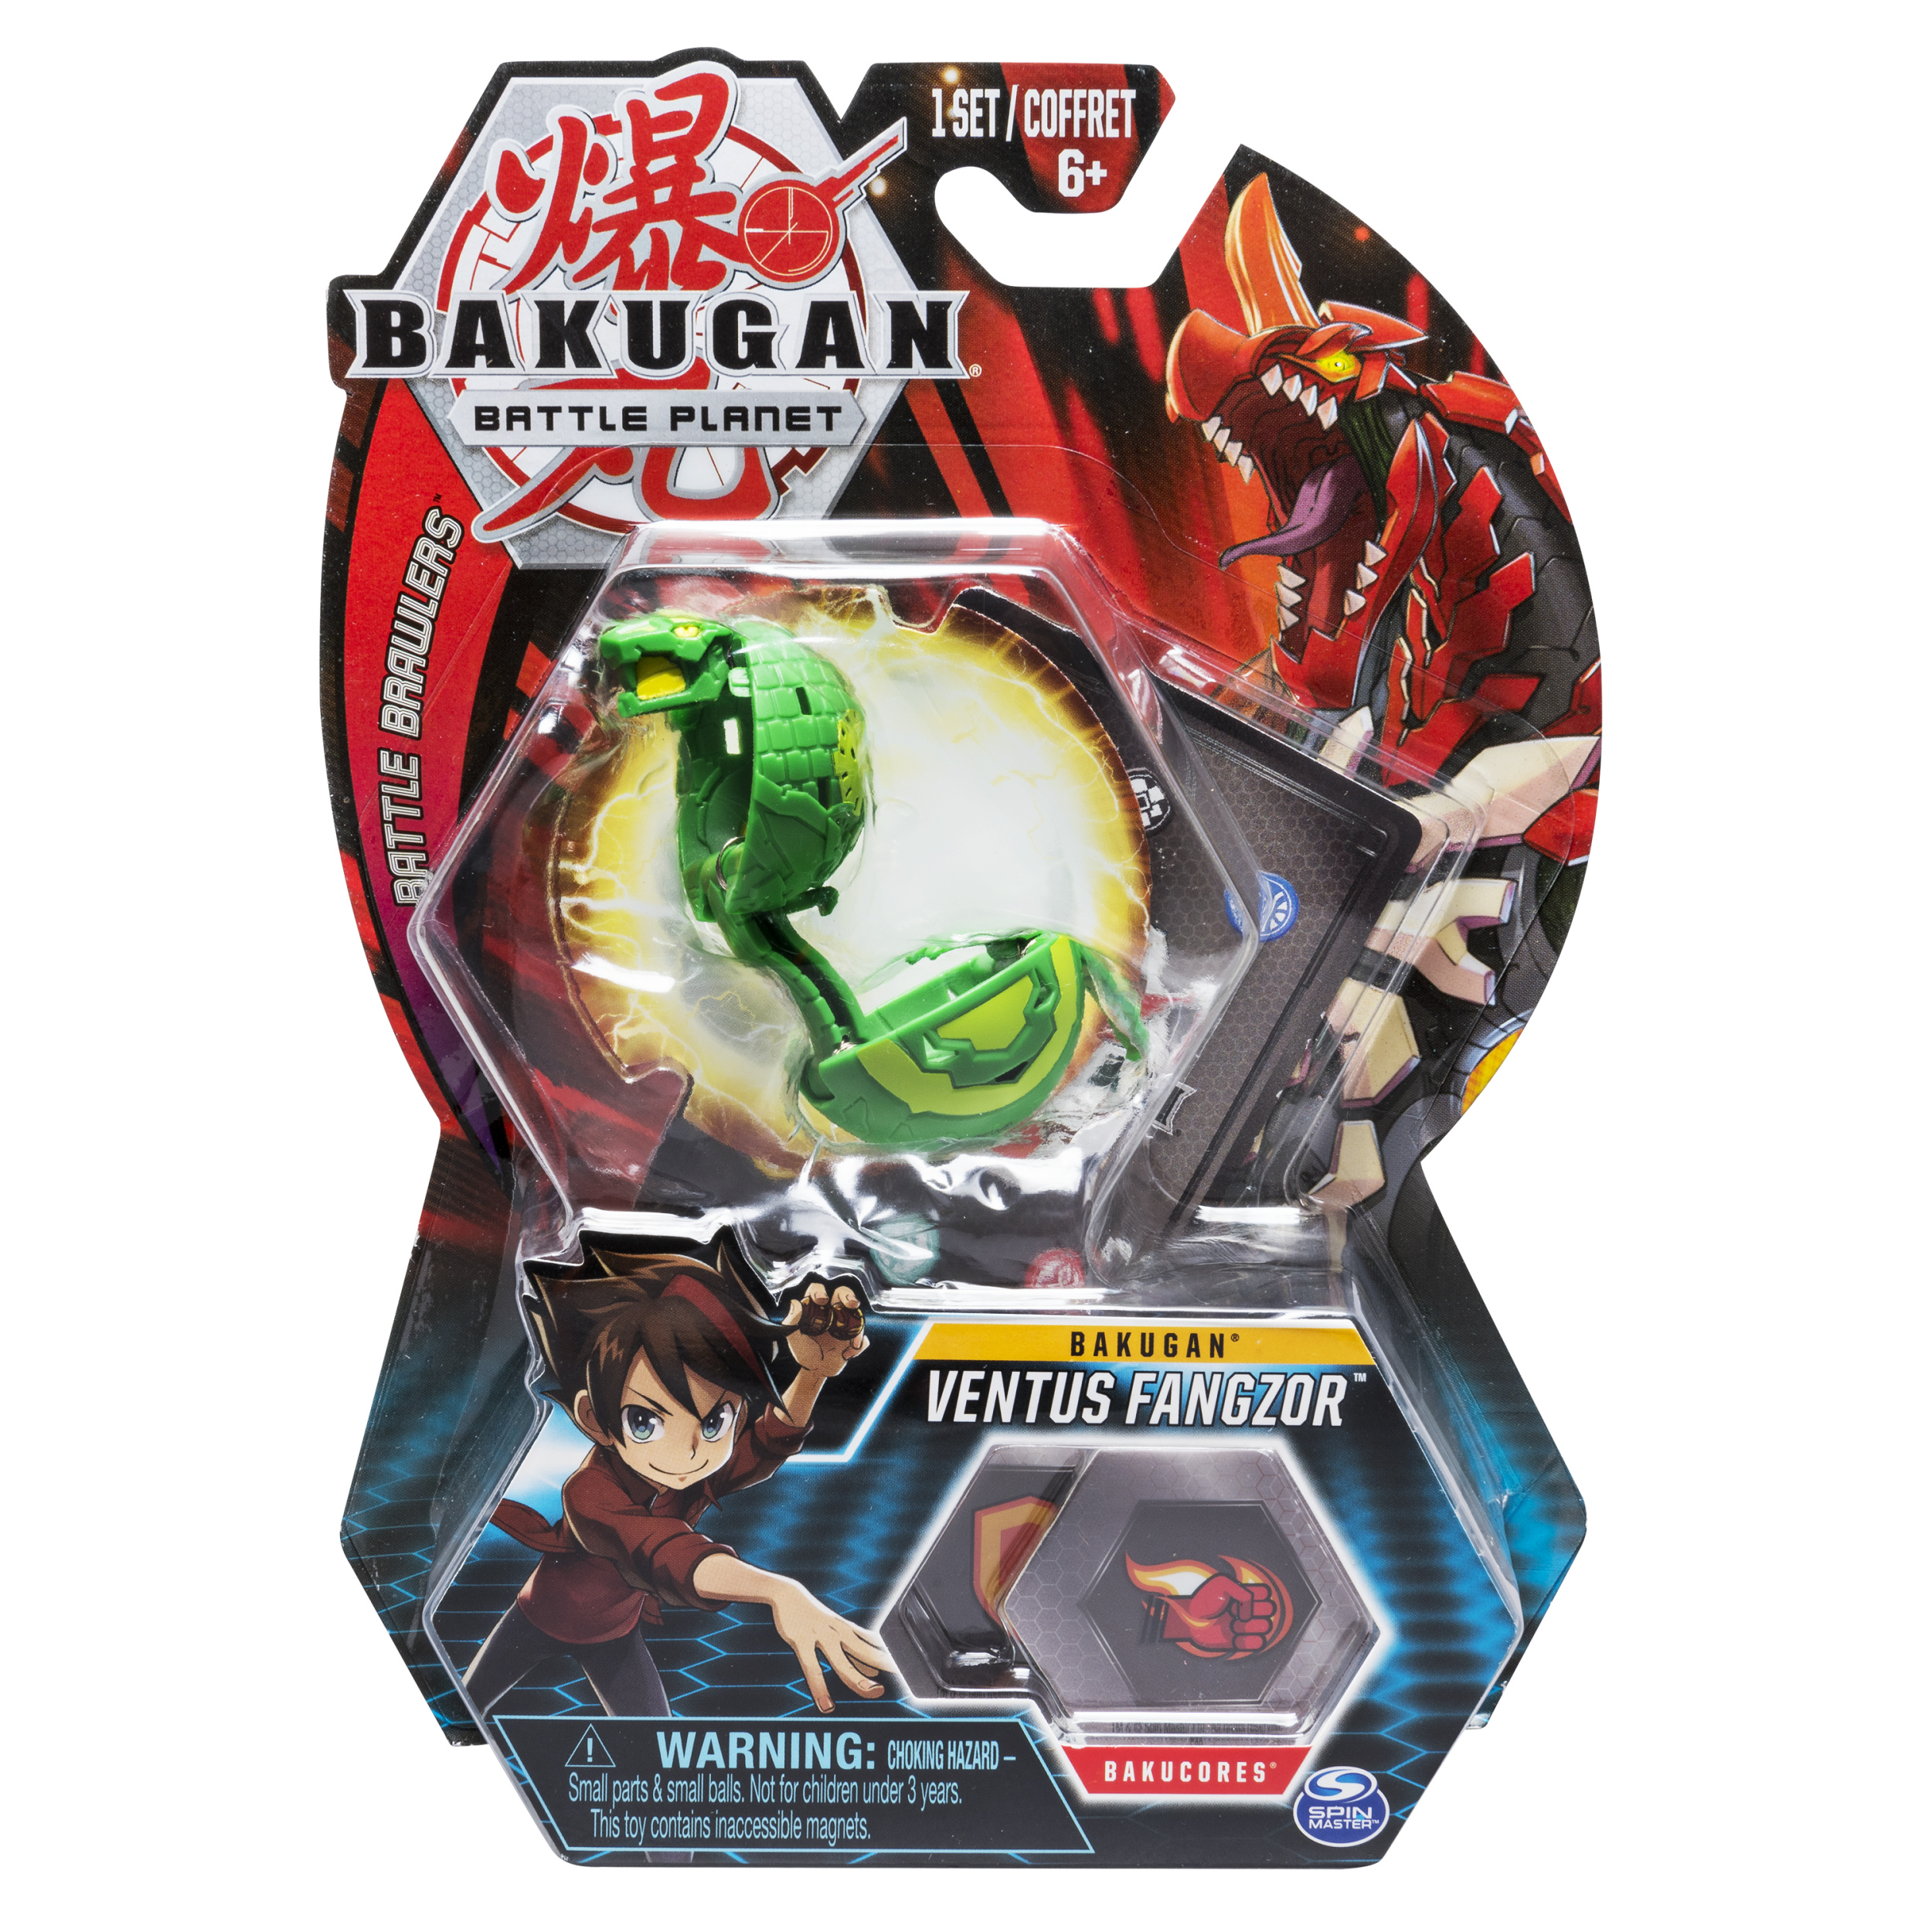 Bakugan, Ventus Fangzor, 2-inch Tall Collectible Action Figure and Trading Card, for Ages 6 and Up